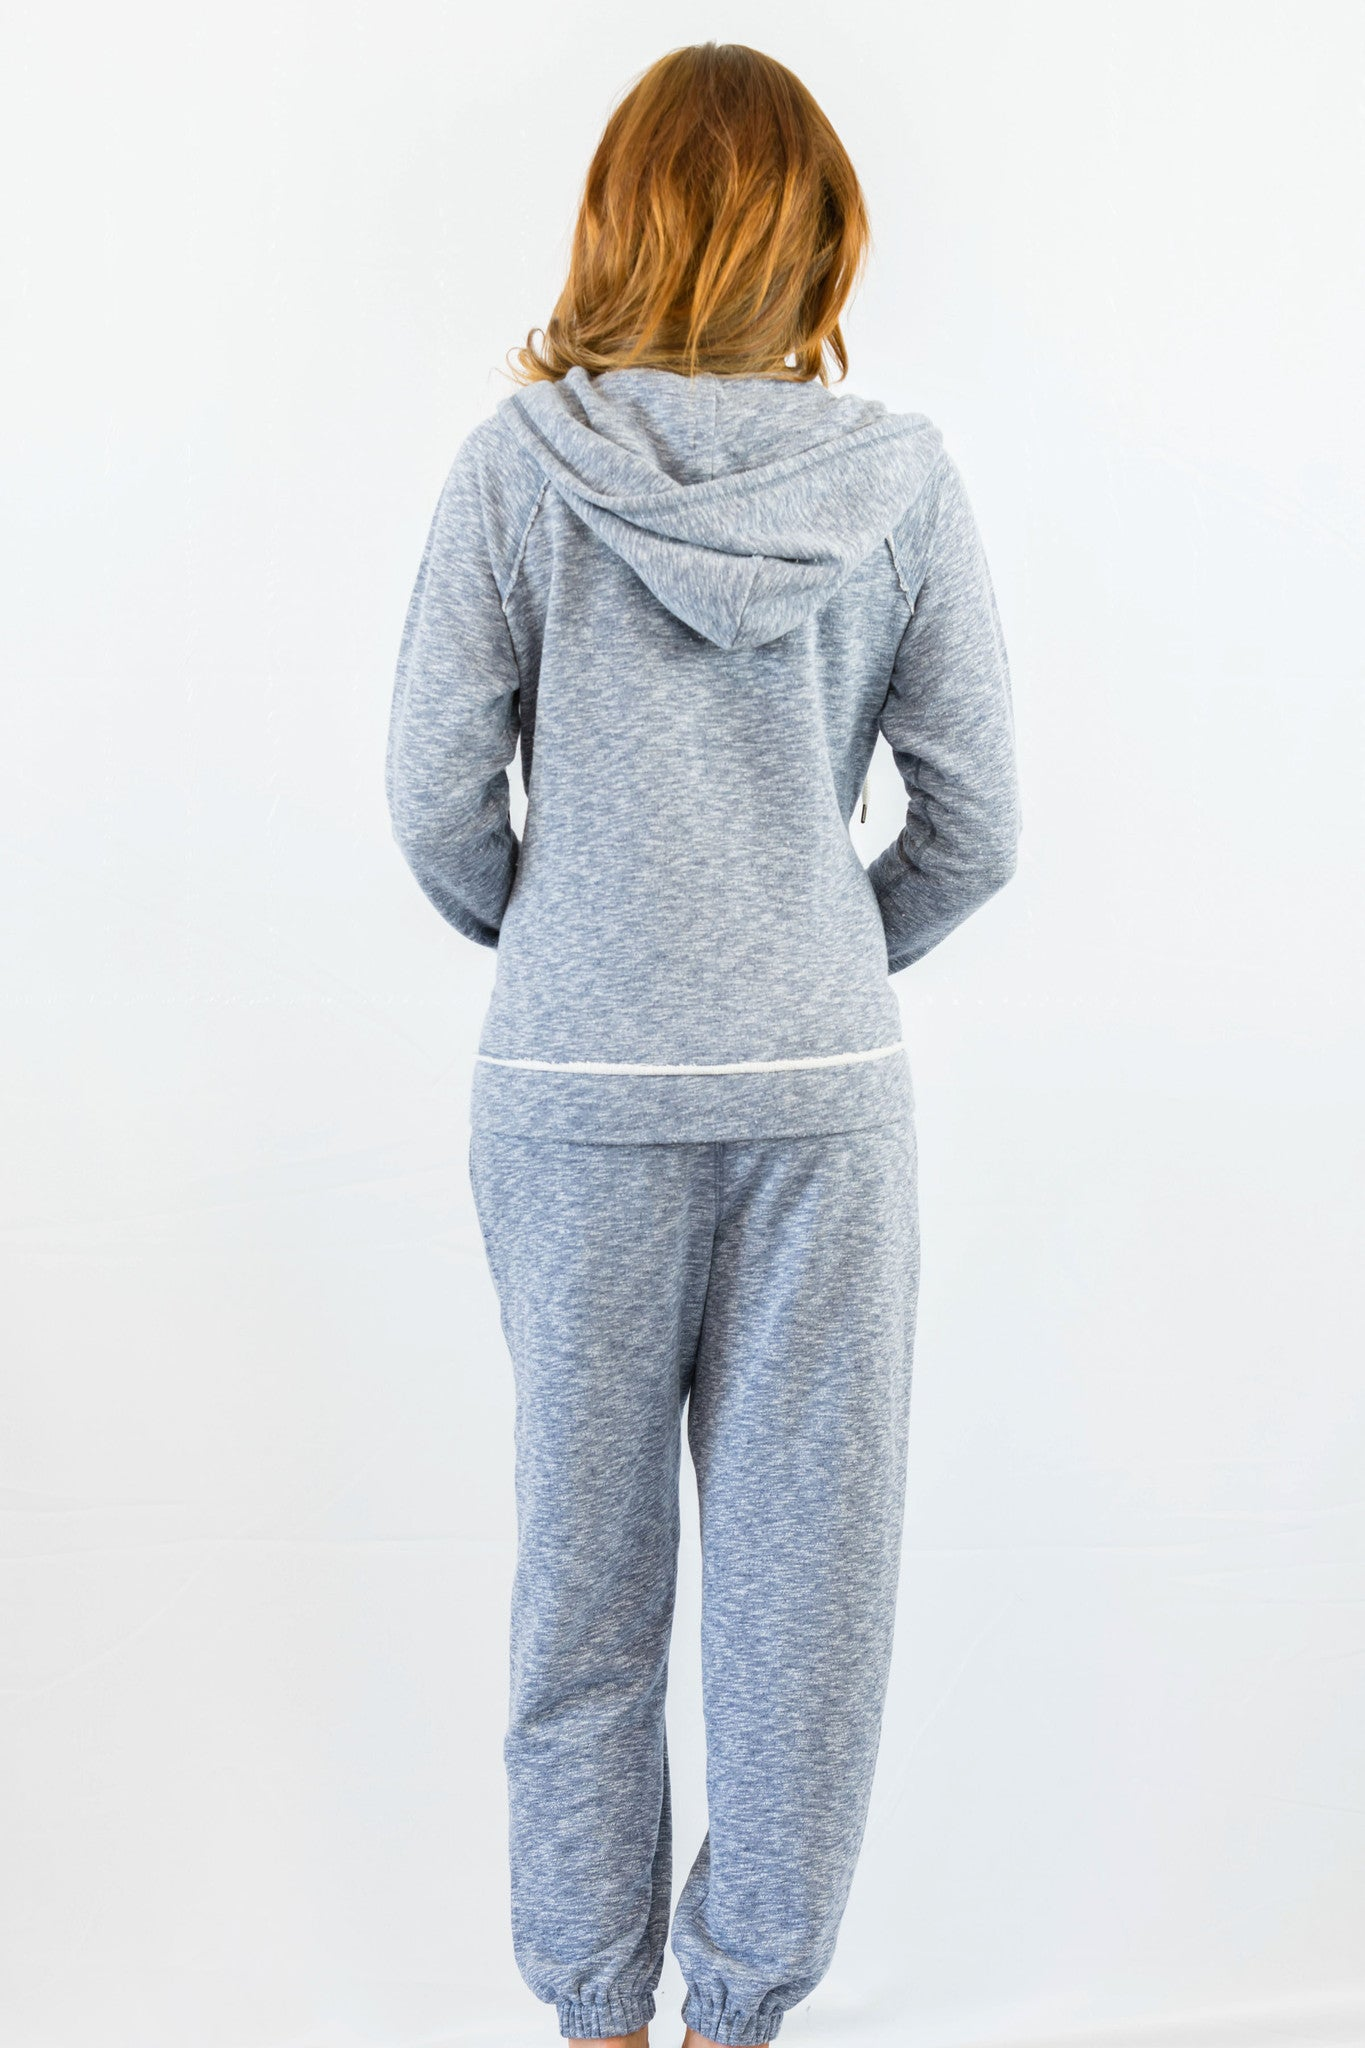 NikiBiki Work Sweat Two Piece Sweatsuit - TWO PIECES - NIKIBIKI - Free Vibrationz - 2